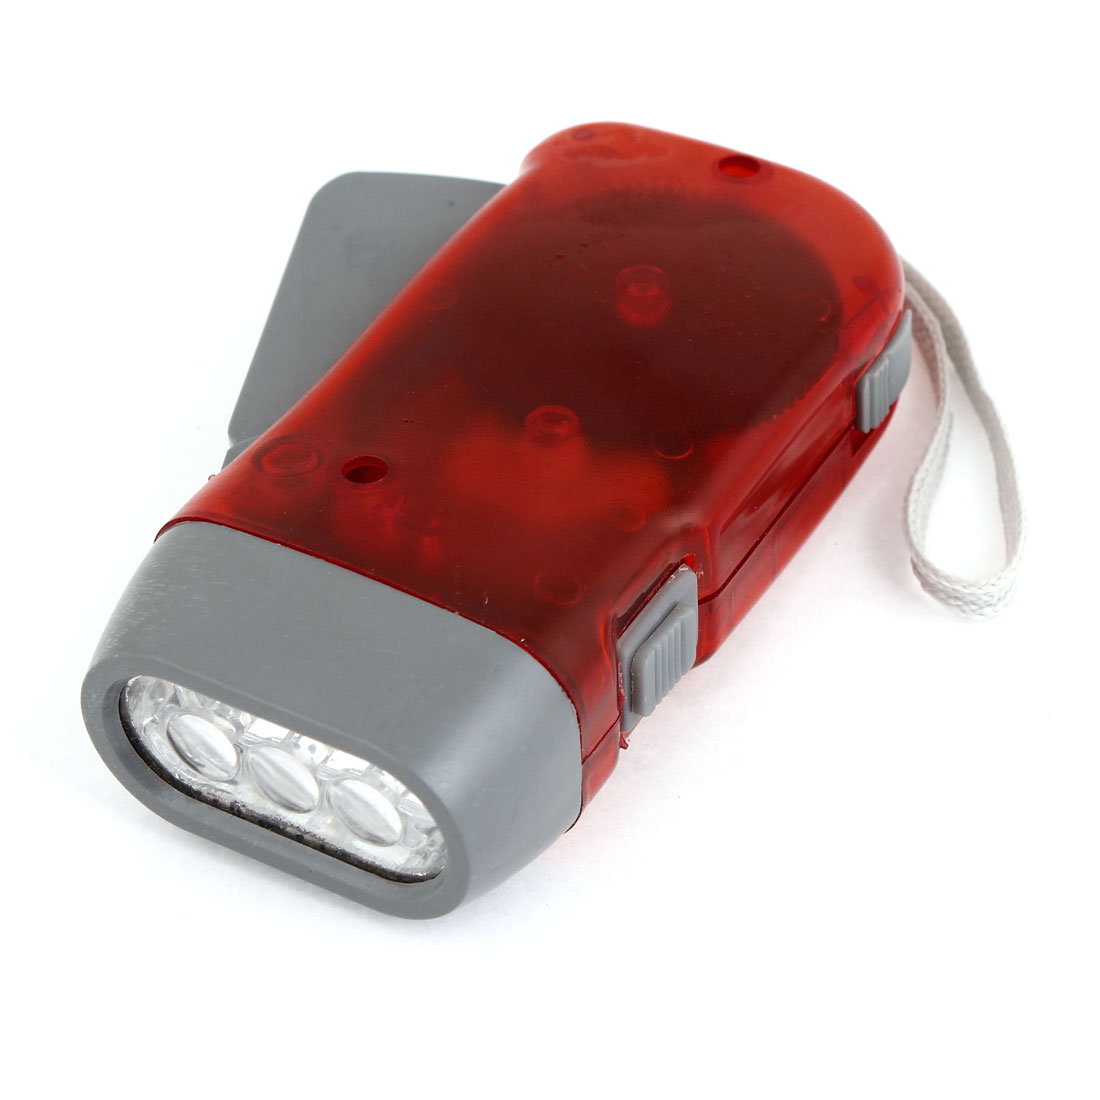 Hand-pressing Plastic 3 LED Flashlight Torch with Hand Strap Red Gray